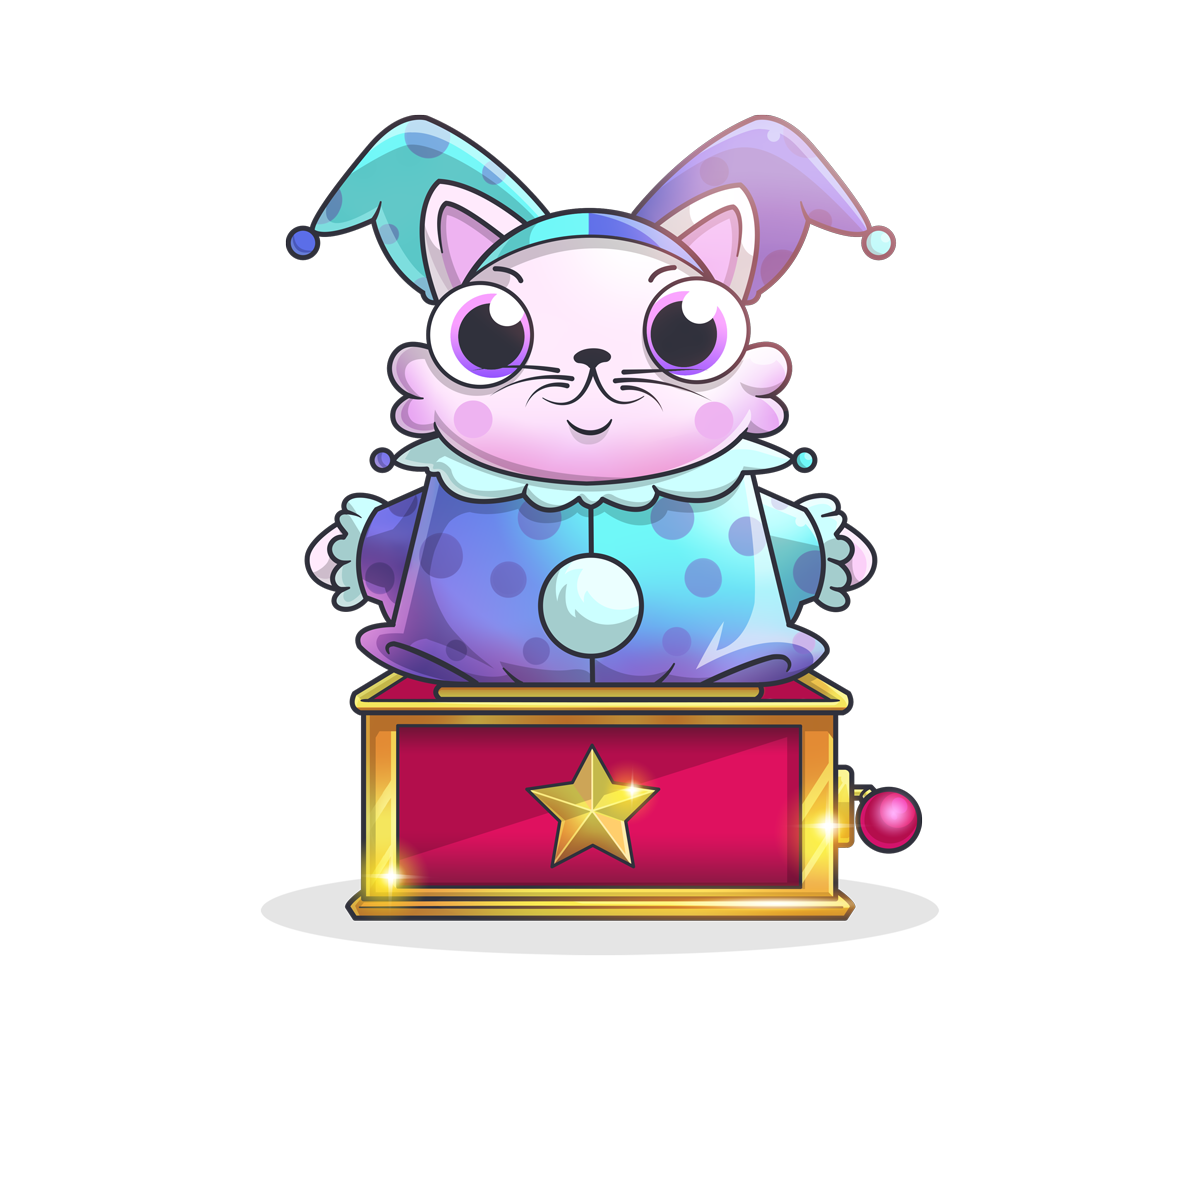 cryptokitty #1775945